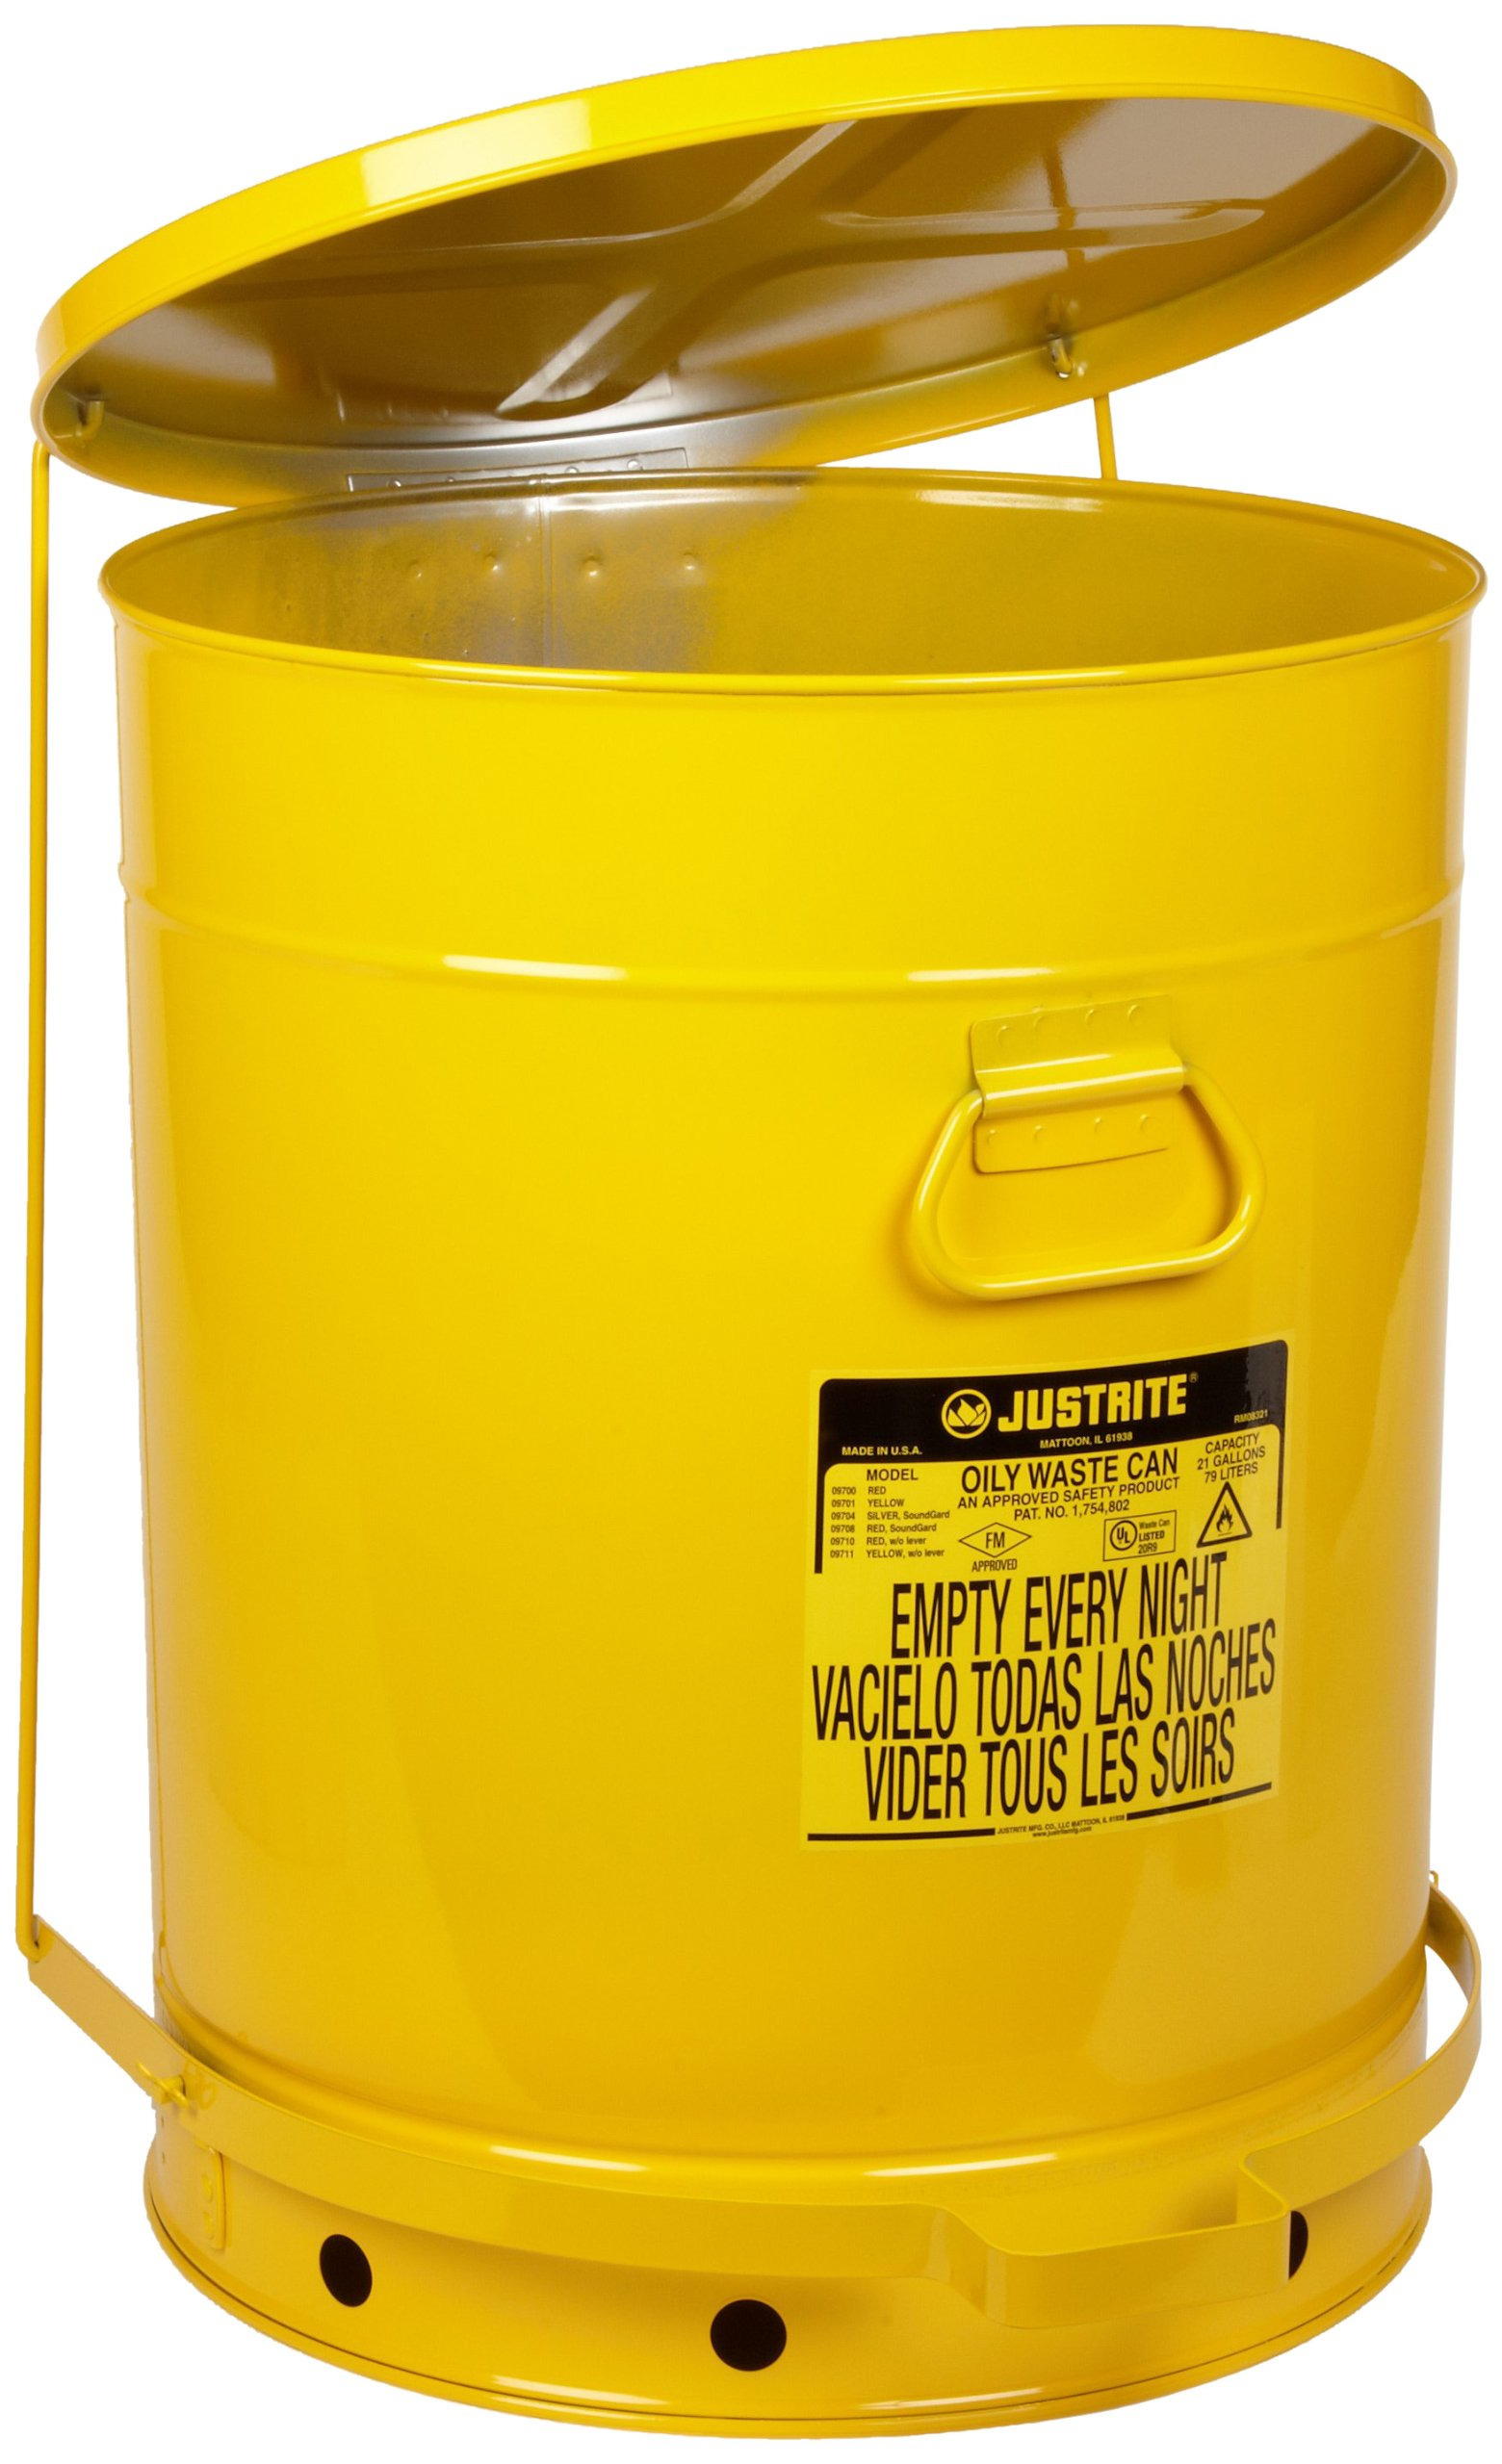 Justrite 09701 21 Gallon, Galvanized-Steel Yellow Safety Cans for Oily Waste